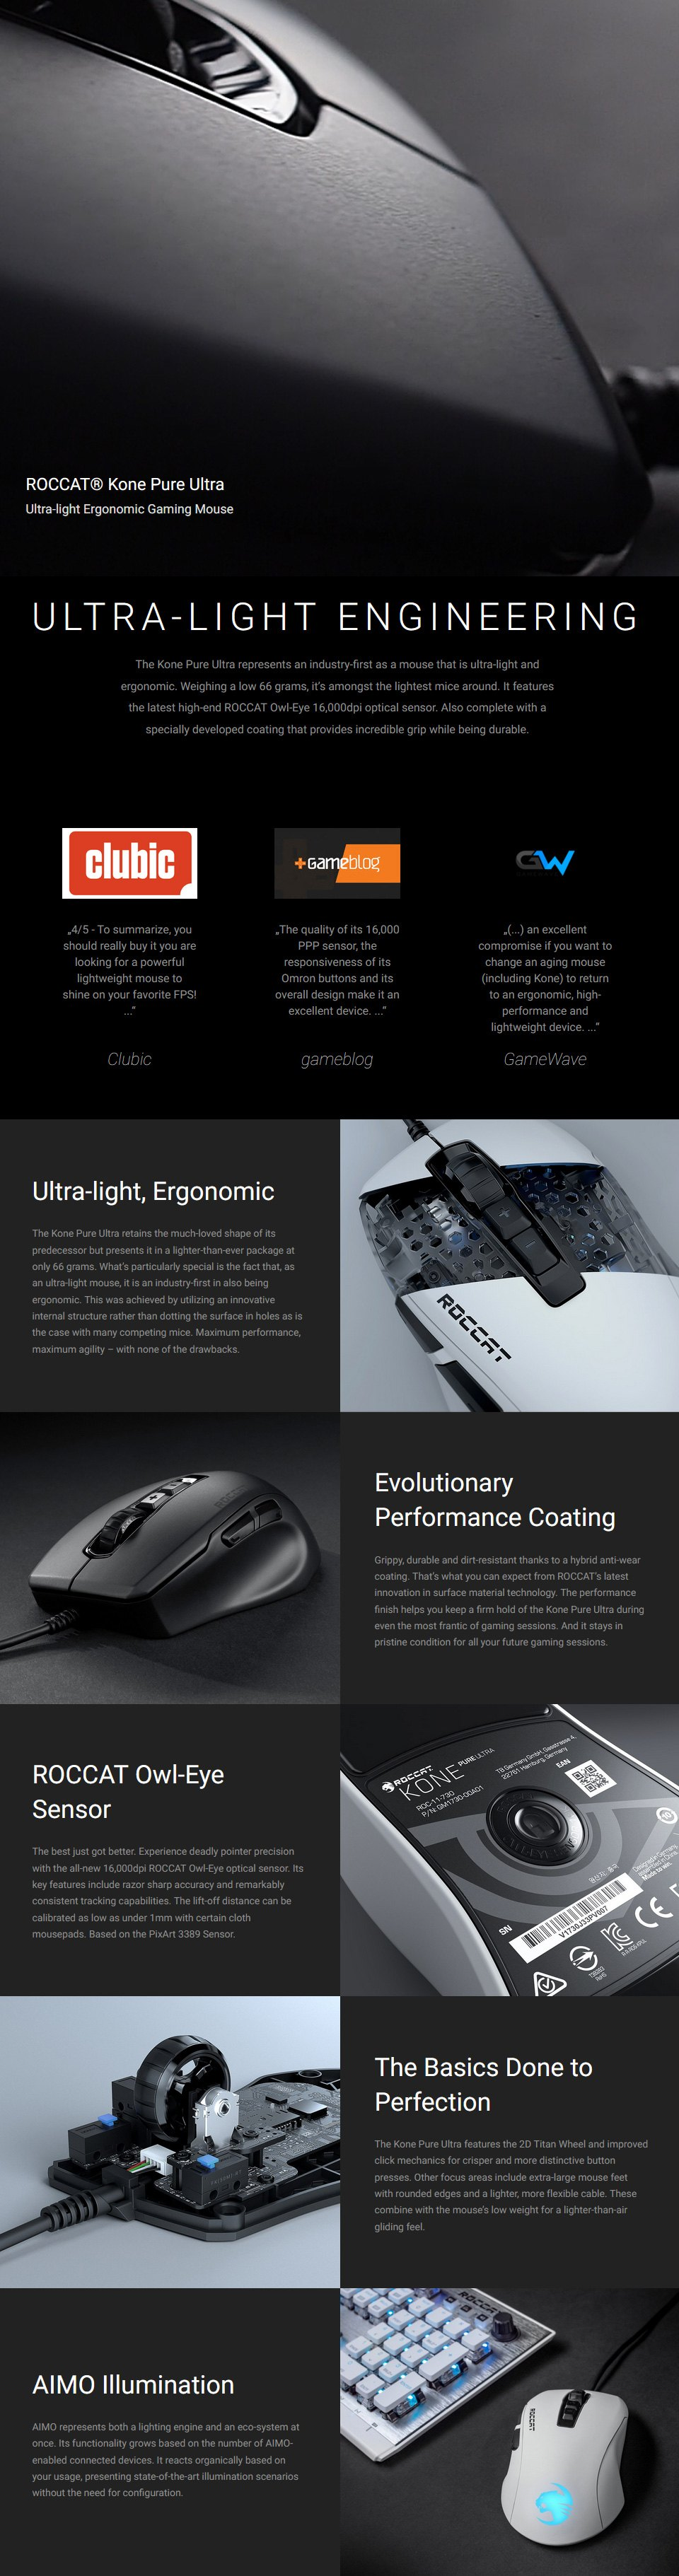 Roccat Kone Pure Ultra Gaming Mouse Black features